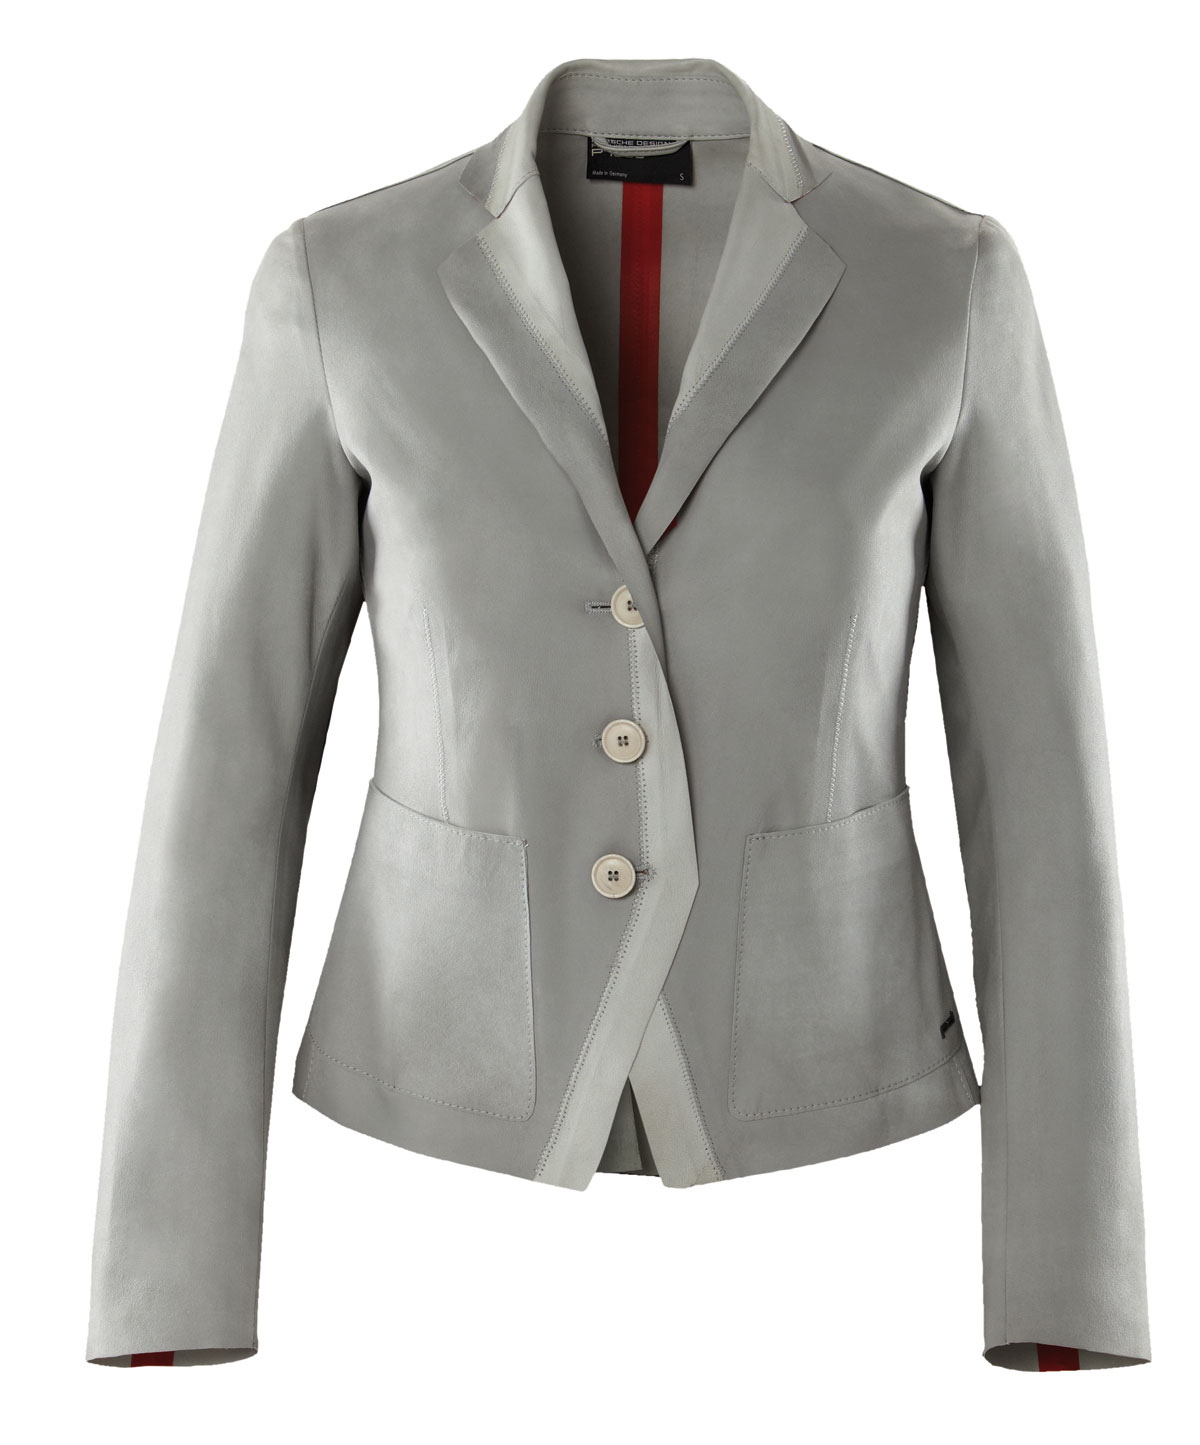 White Women Blazer Design Fashion Trend 2011 | Male Models Picture